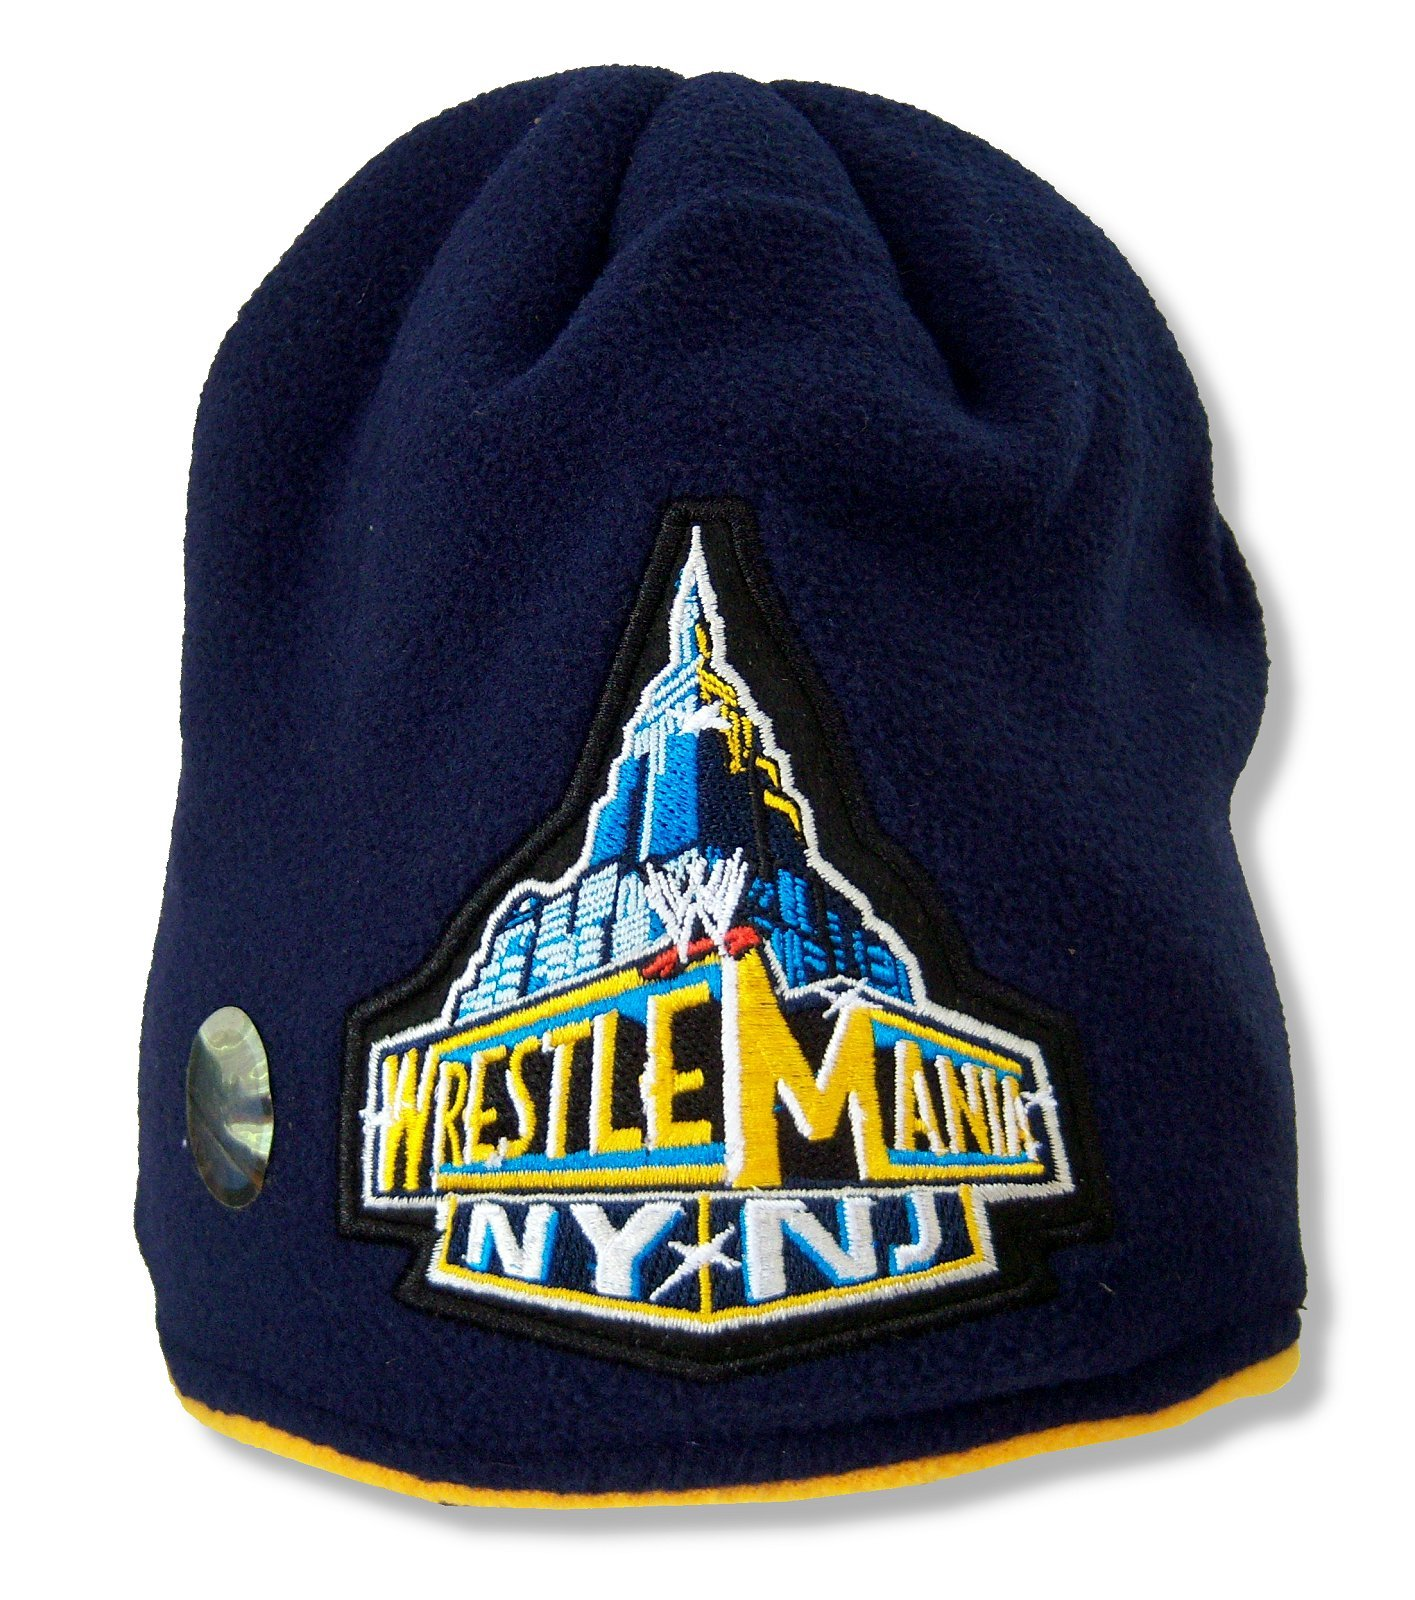 Adult WWE Wrestling Wrestlemania Navy Blue Fleece Beanie Hat by WWE Authentic